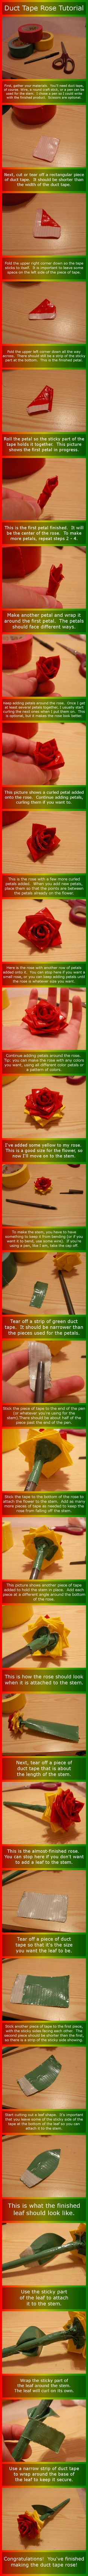 duct tape rose tutorial from annelicyambl.deviantart.com